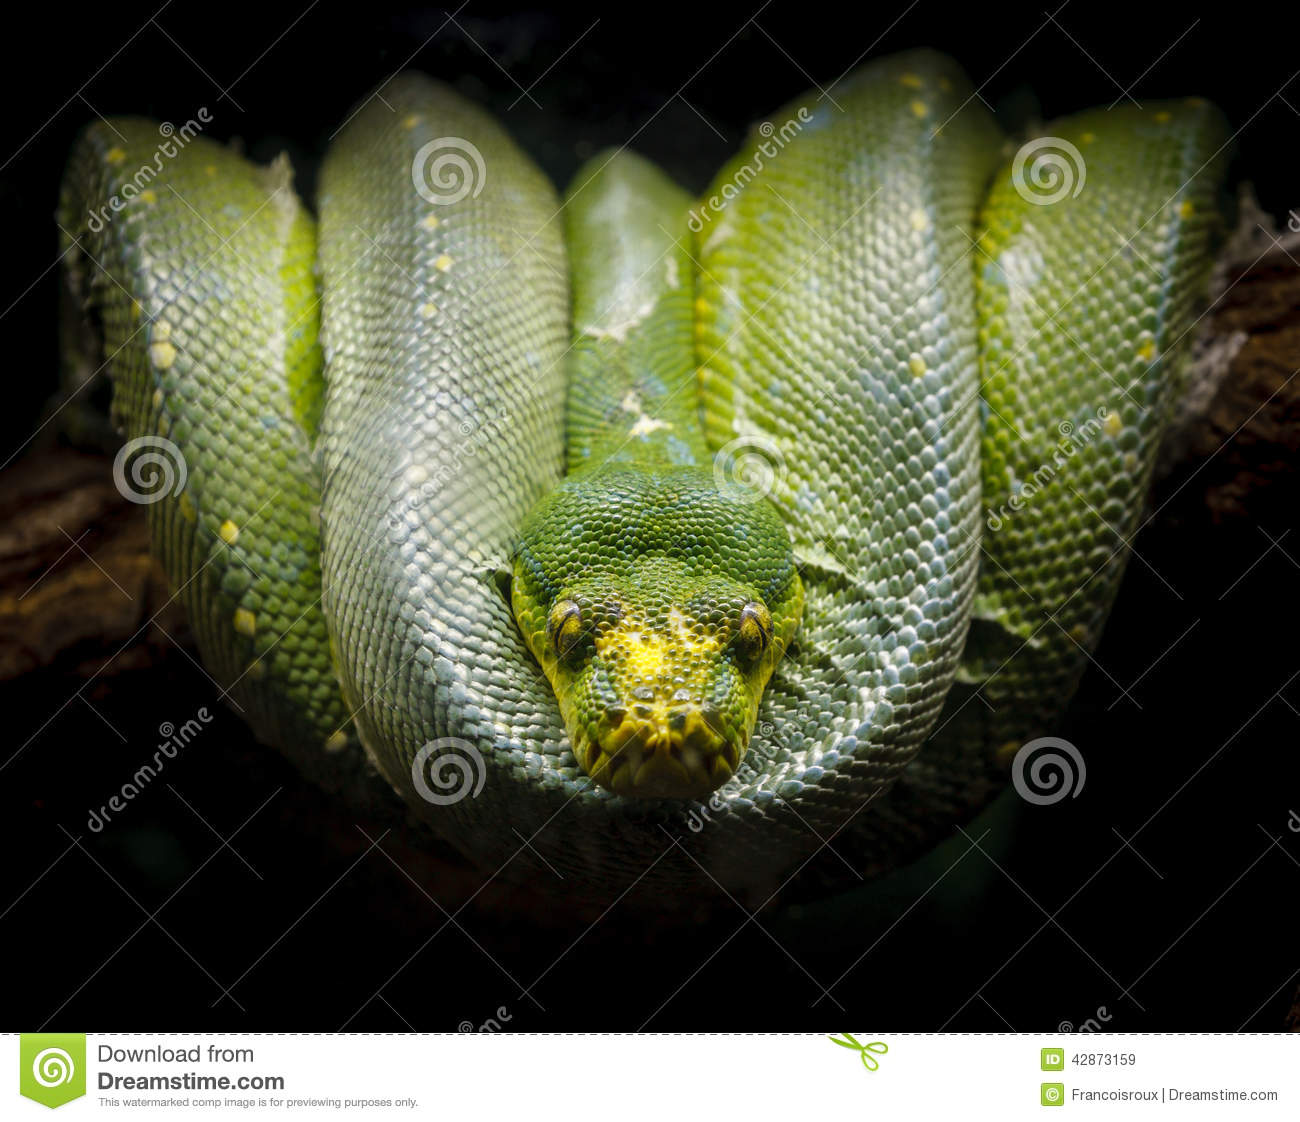 Green Tree Python Coiled On A Branch. Morelia Viridis. Stock Photo.